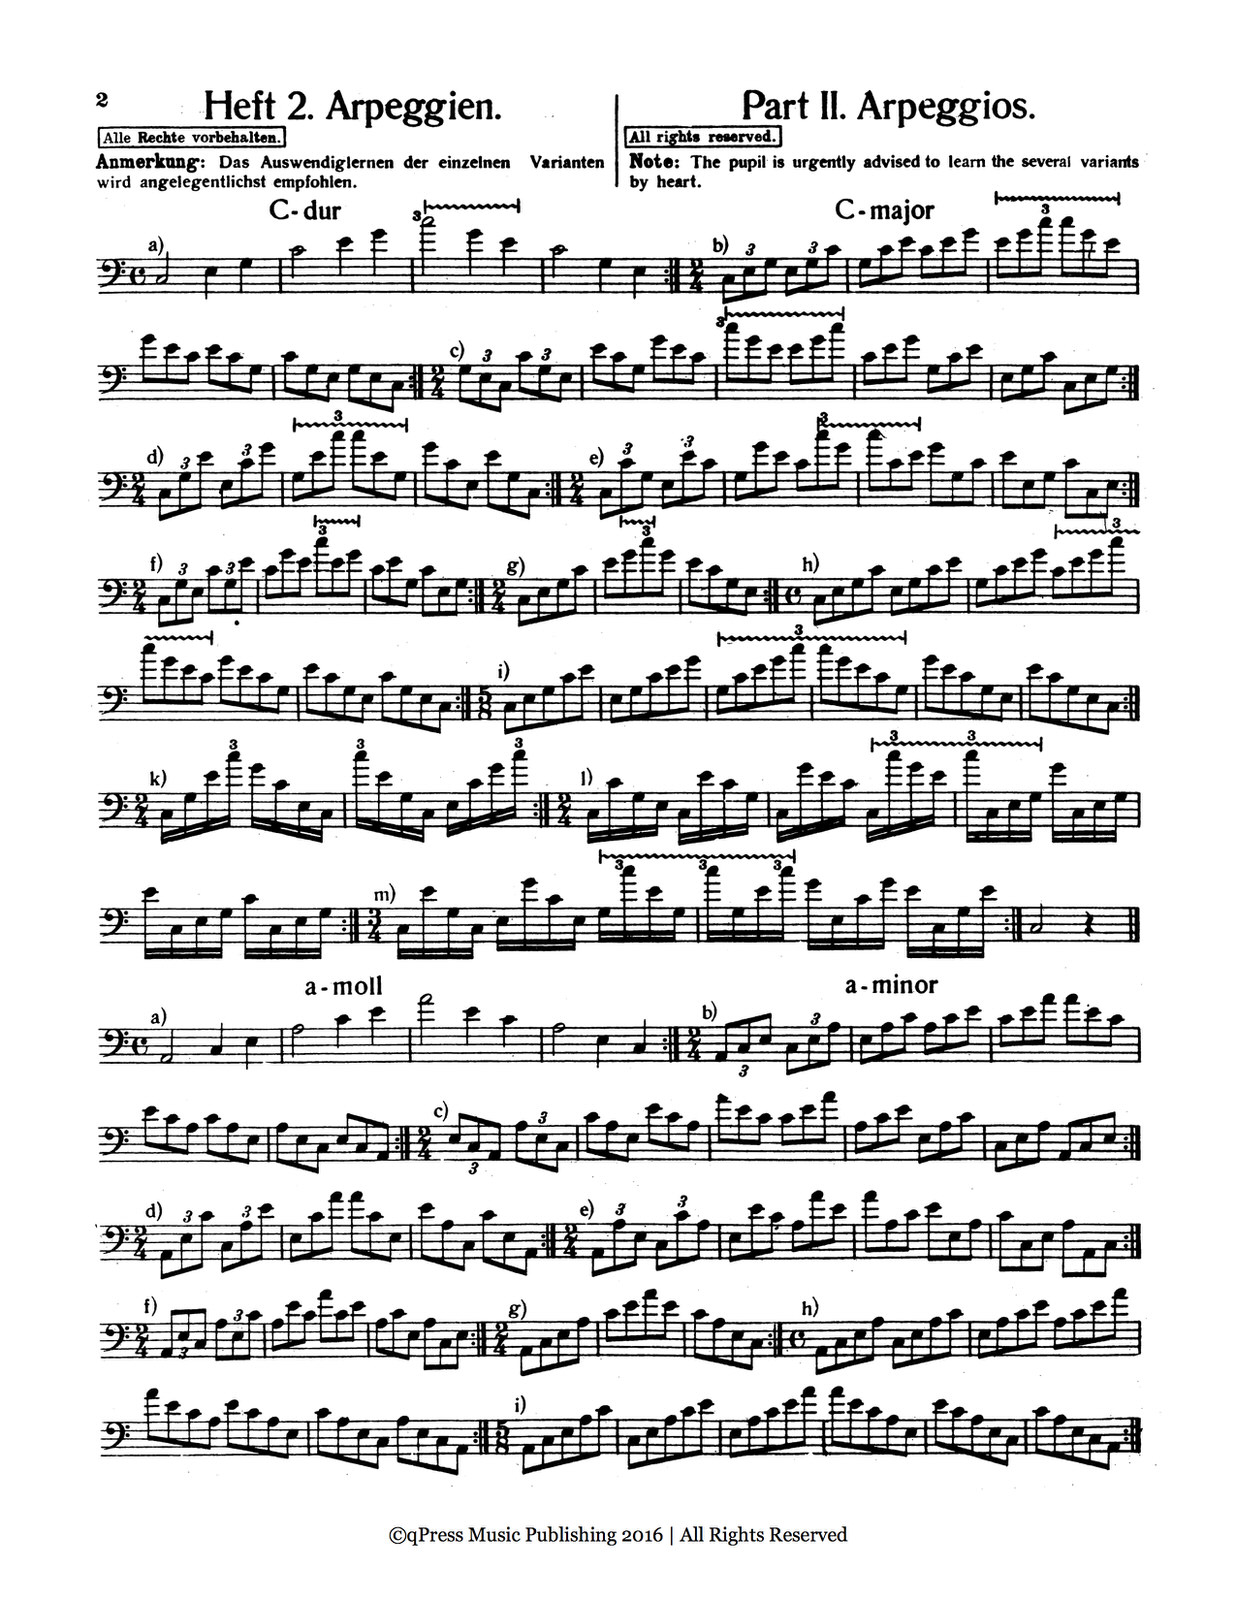 gaetke-studies-in-scales-and-arpeggios-for-trombone-part-2-5